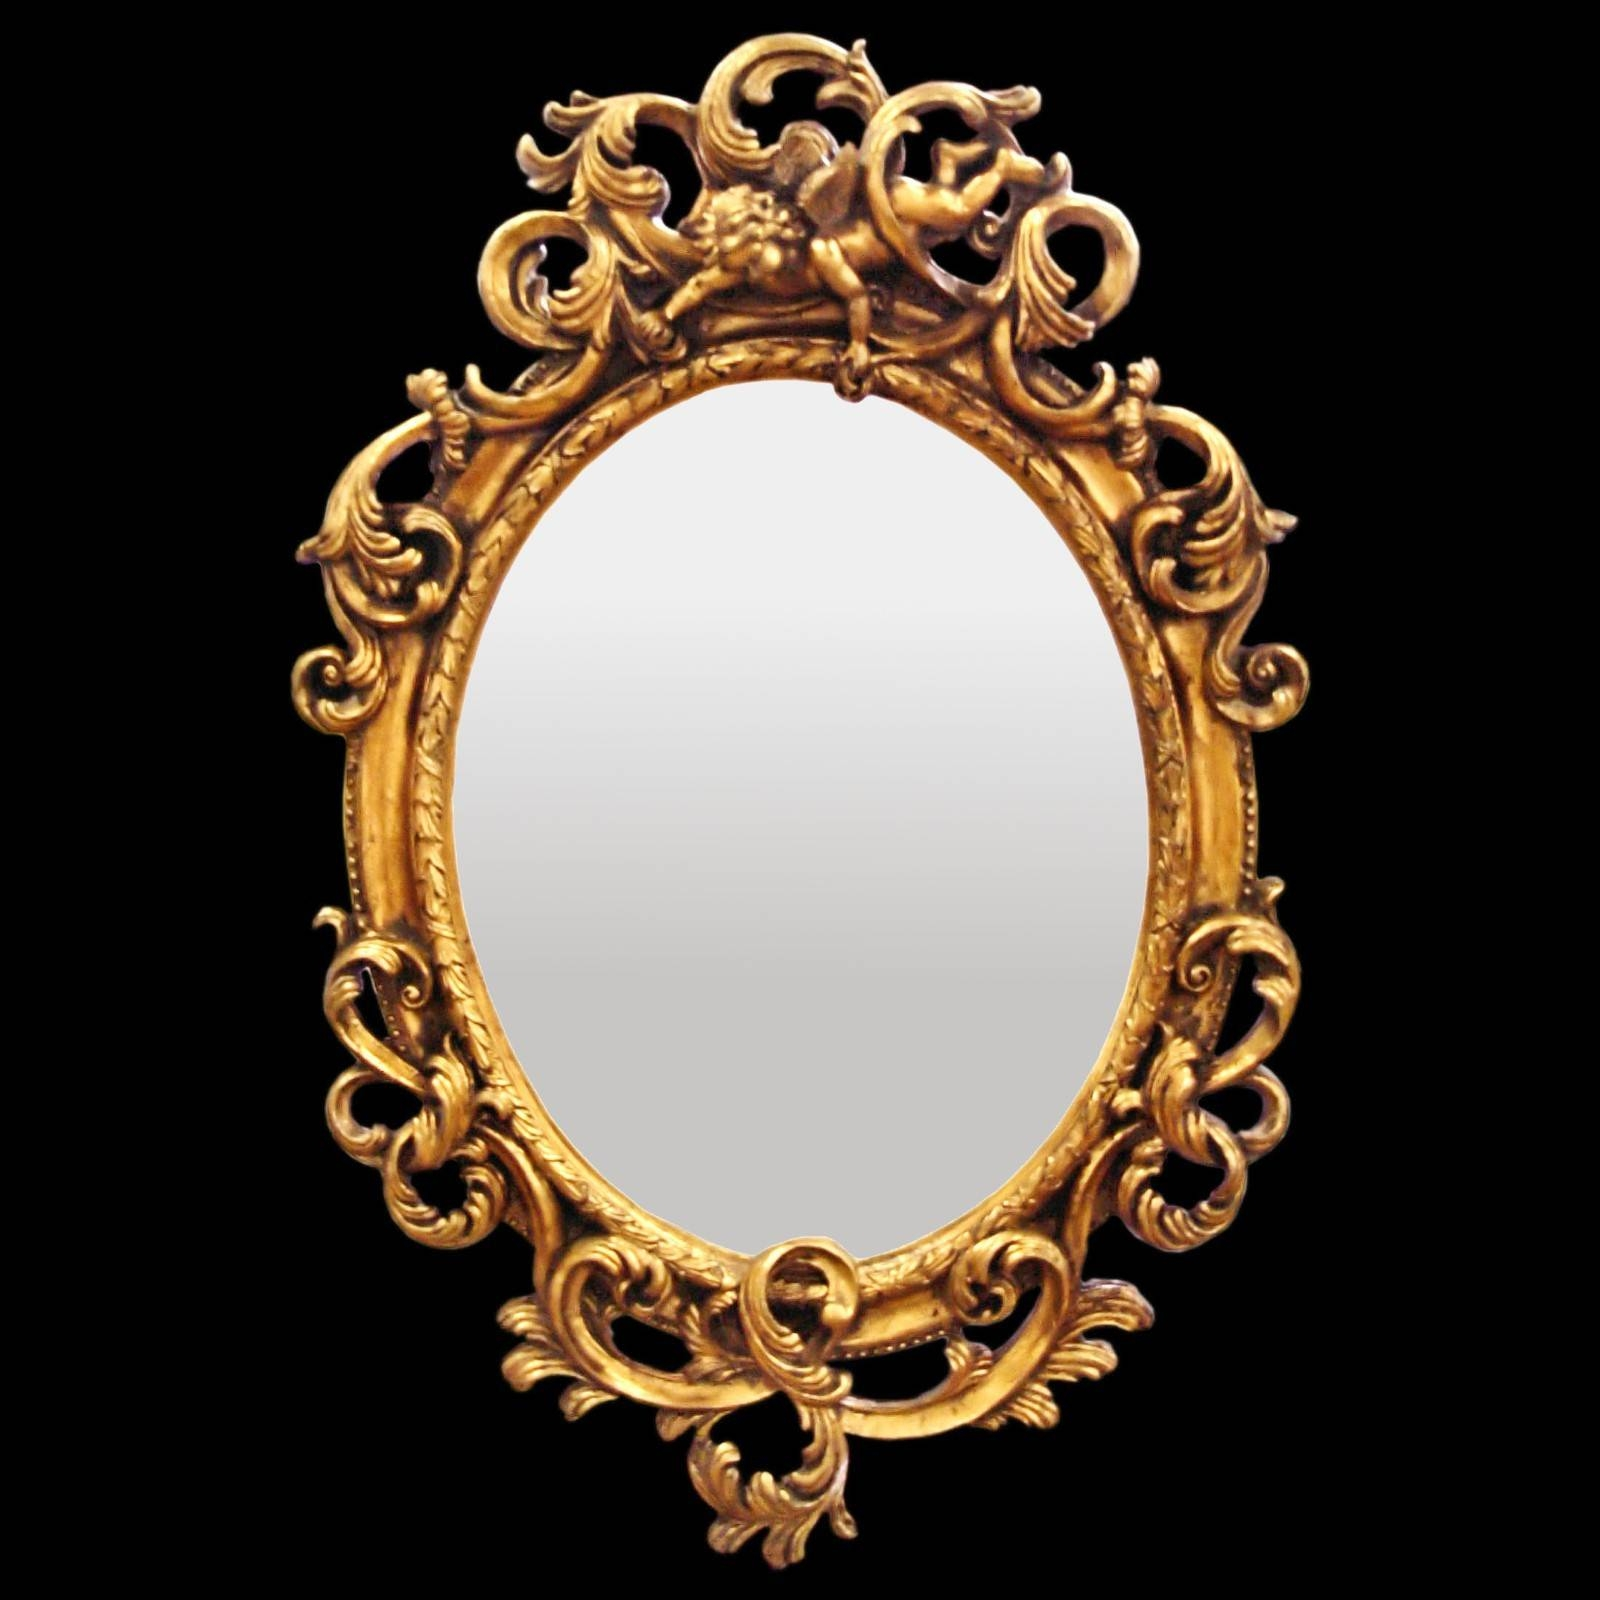 Bathroom Mirror Oval Wall Mirror Baroque De Luxe Gold Acanthus Intended For Baroque Wall Mirrors (View 5 of 15)